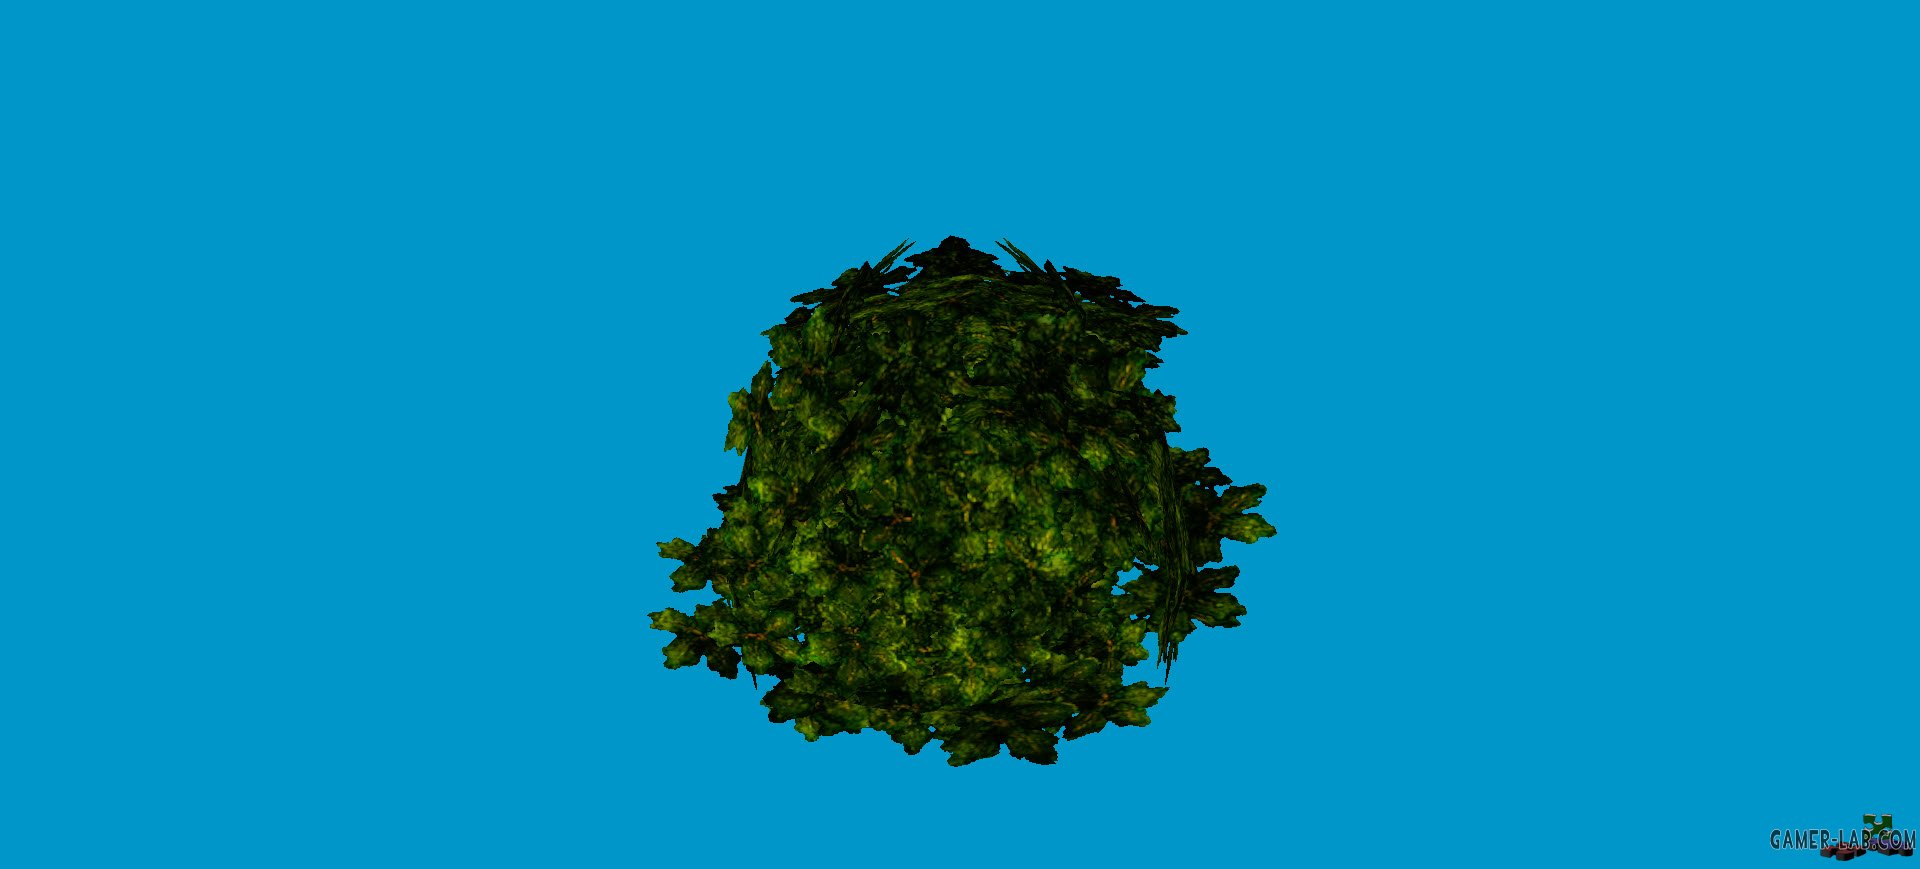 jn_sanicle_shrub_green